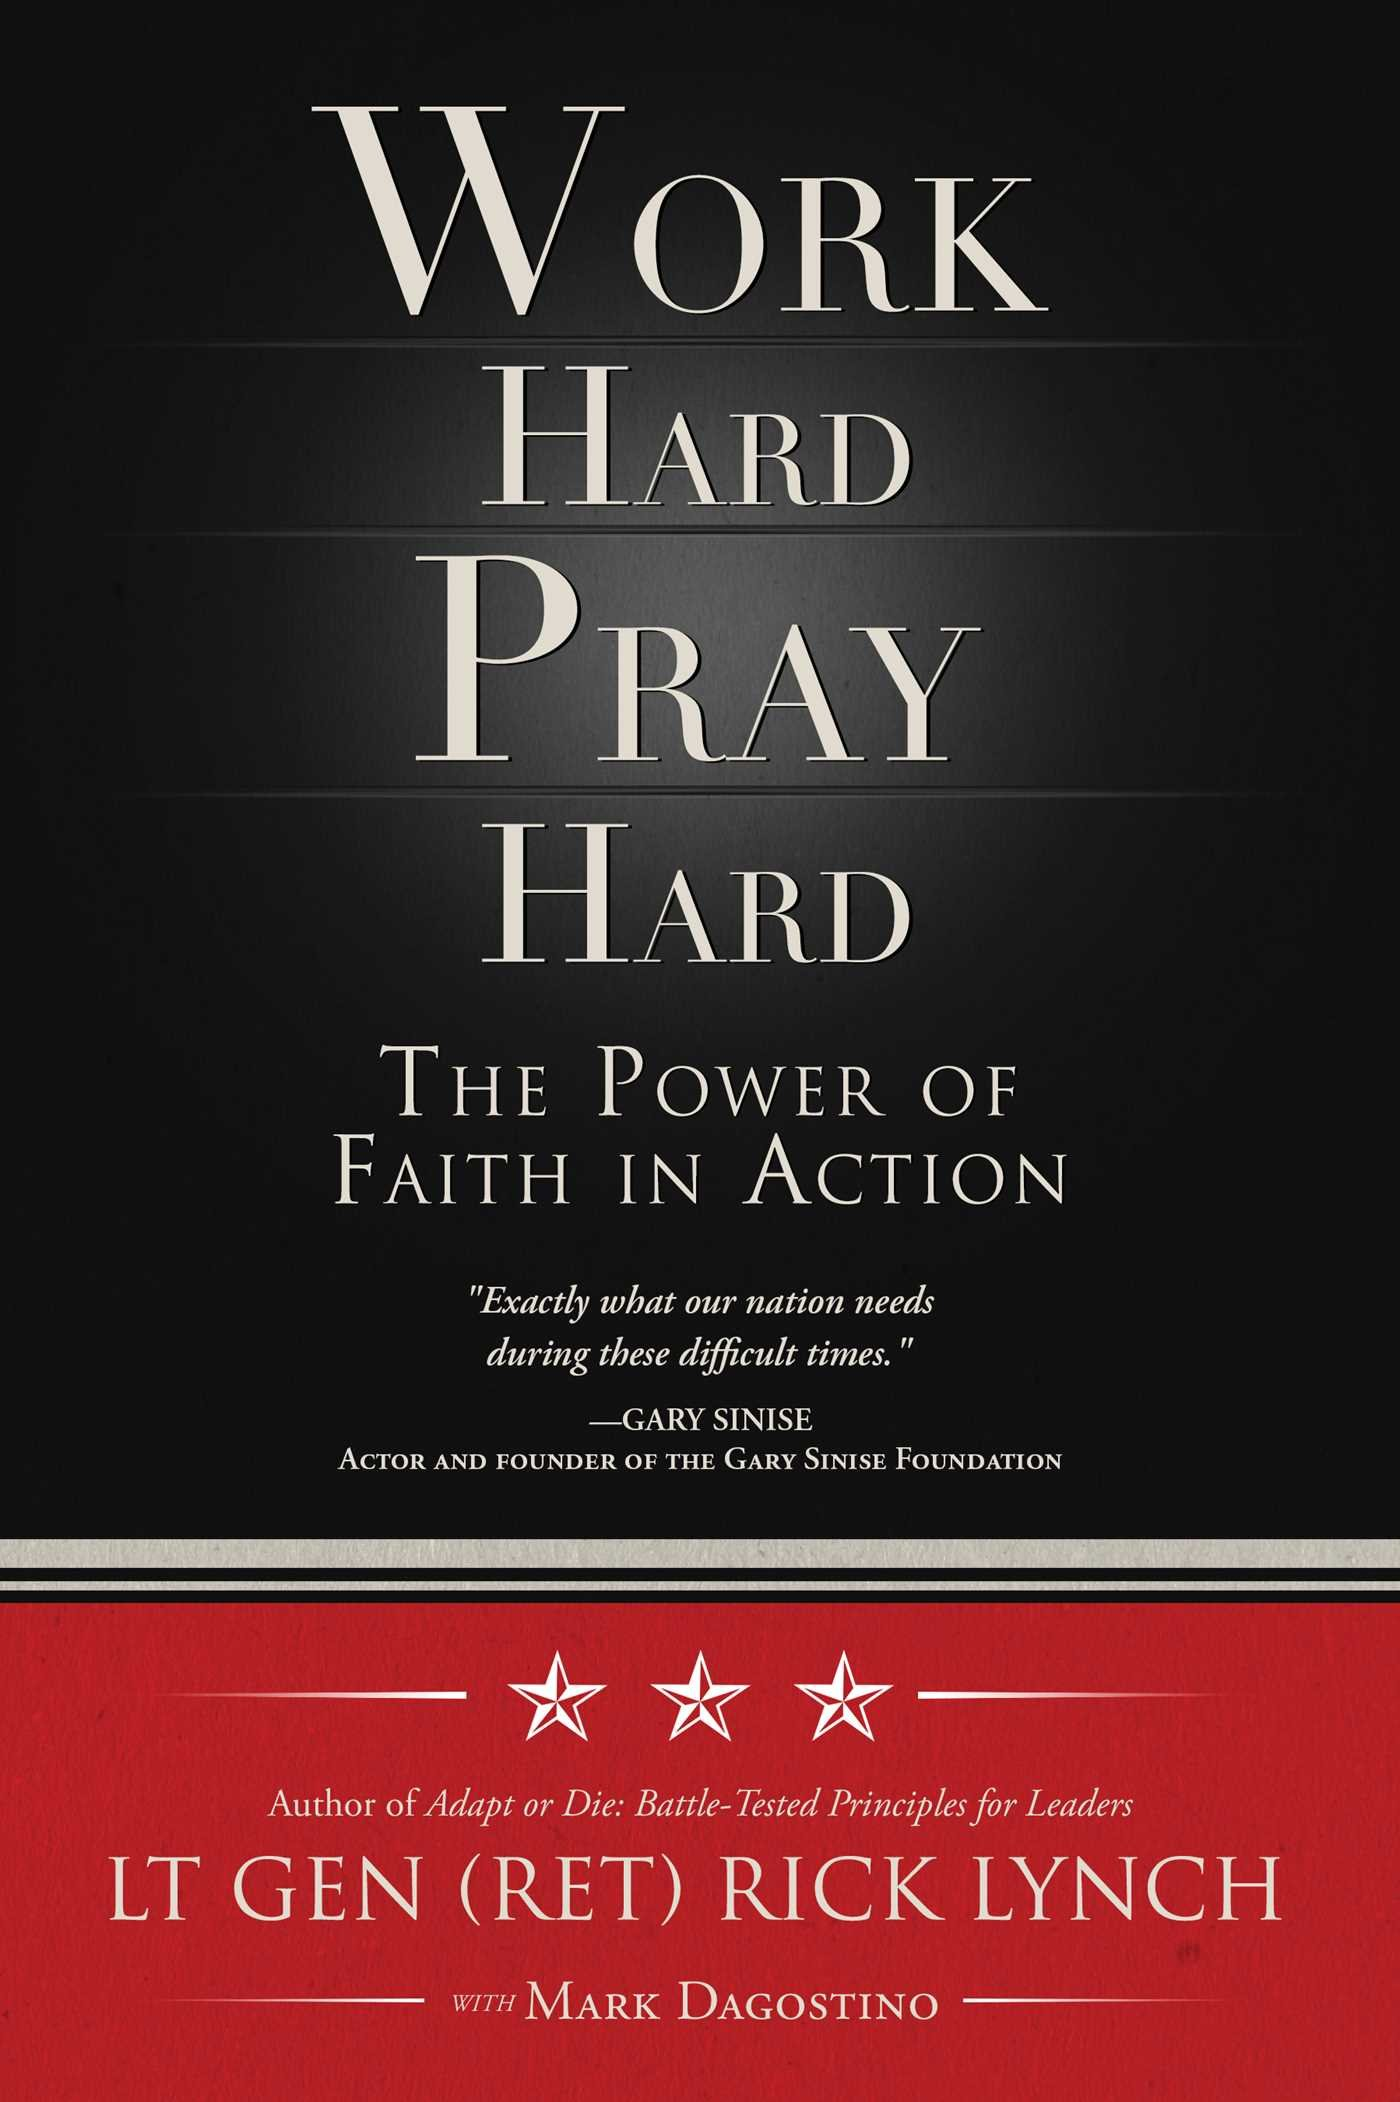 Work Hard Pray Power Action product image